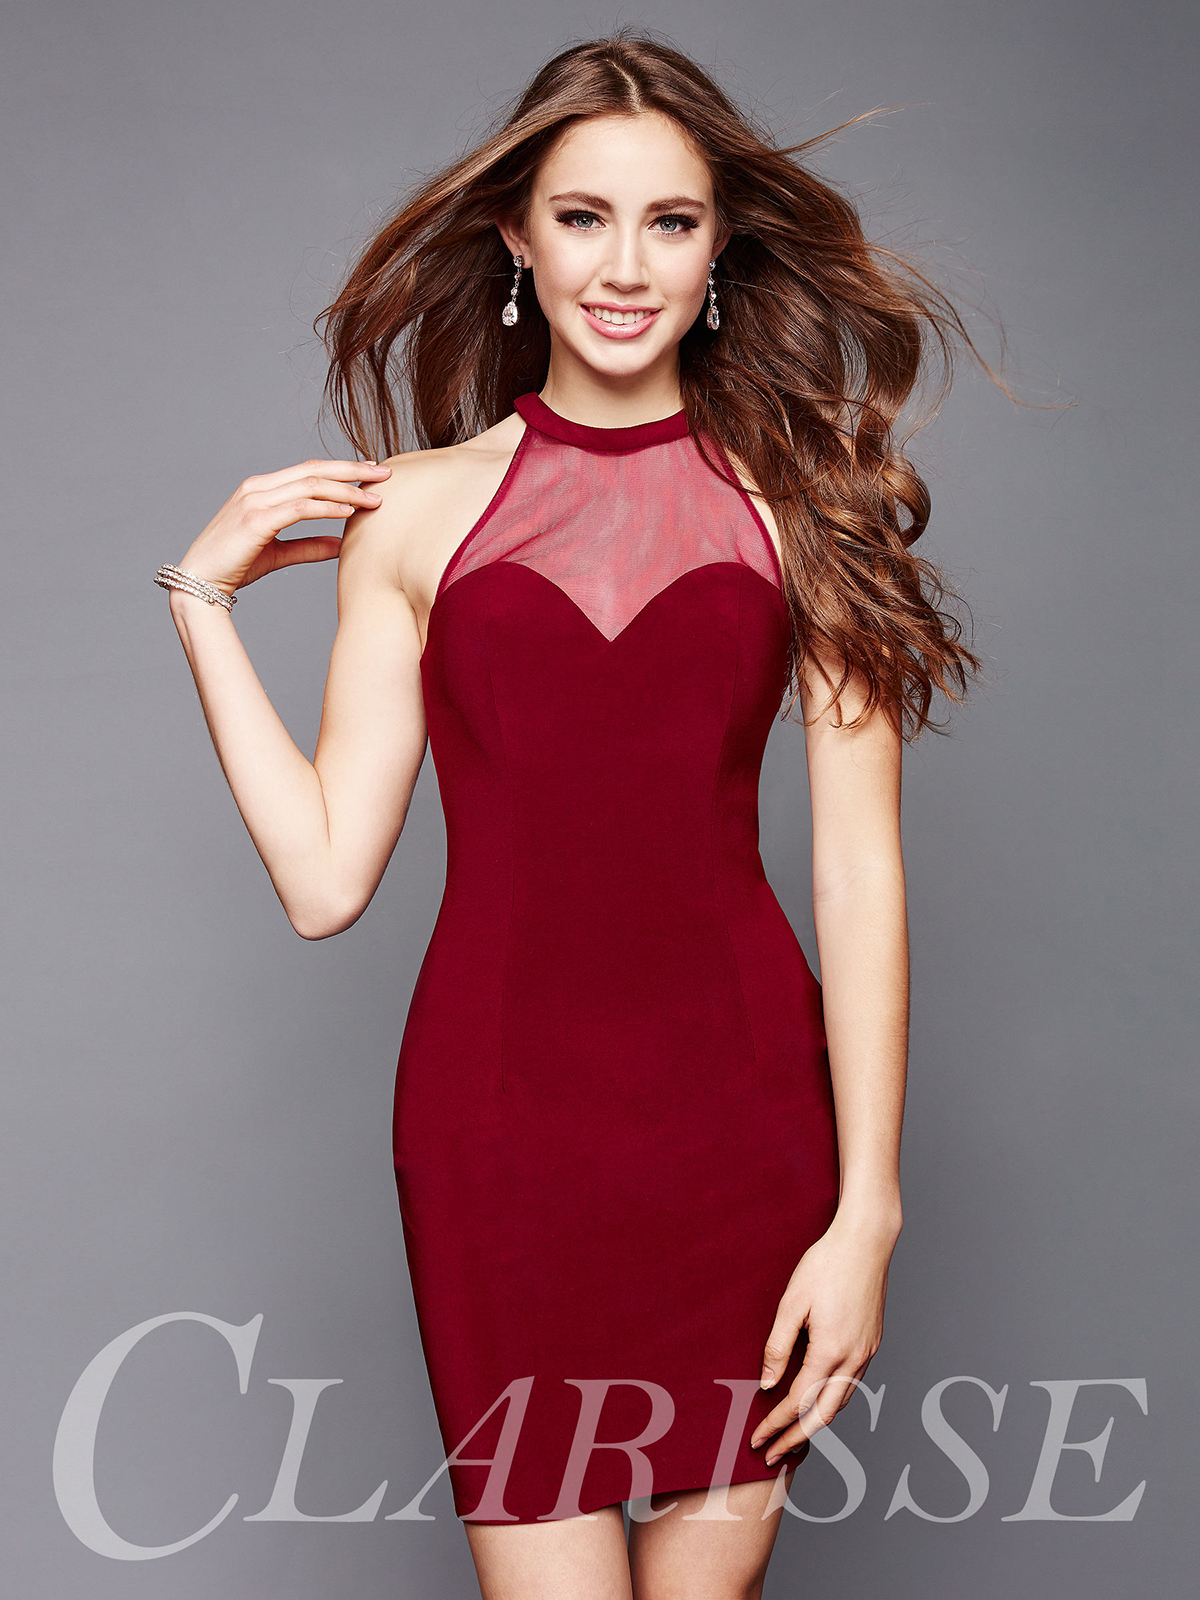 Clarisse Homecoming Dress 3330 | Promgirl.net